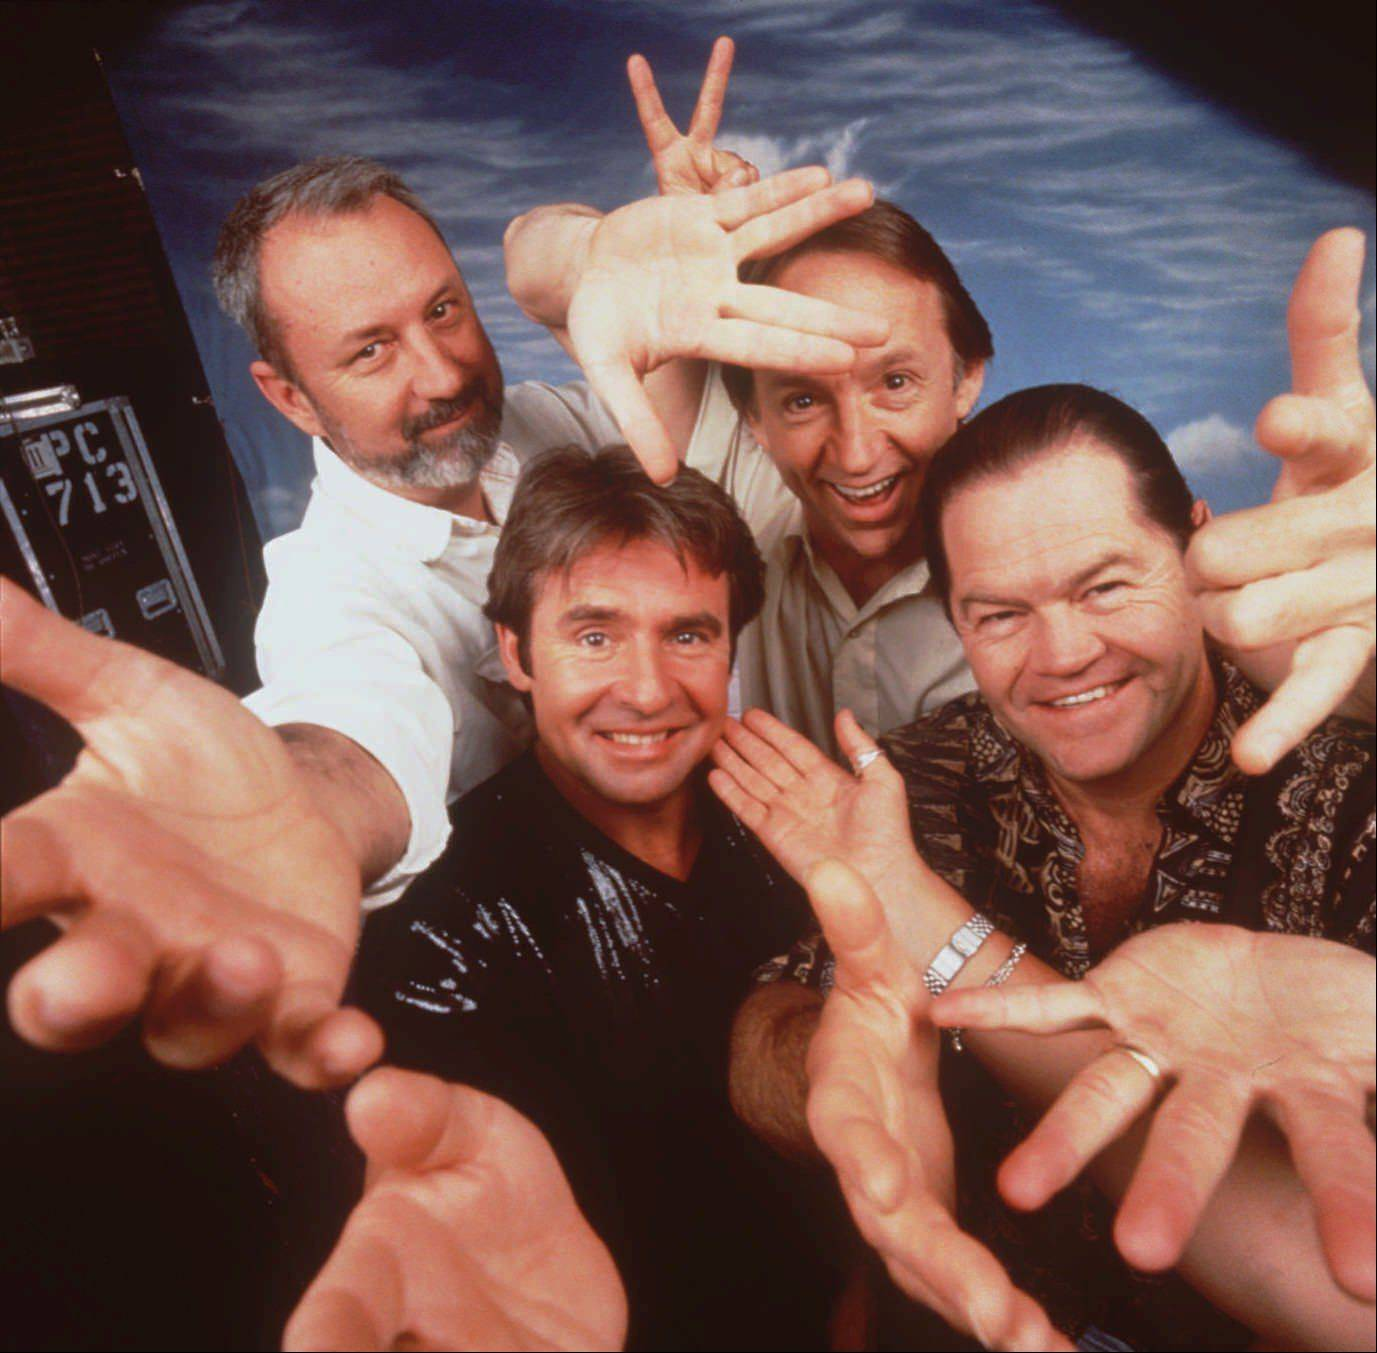 Rock band the Monkees pose for a group portrait in a Burbank, Calif., rehearsal studio in this 1996 photo. From left, are: Mike Nesmith, Davy Jones, Peter Tork and Mickey Dolenz.